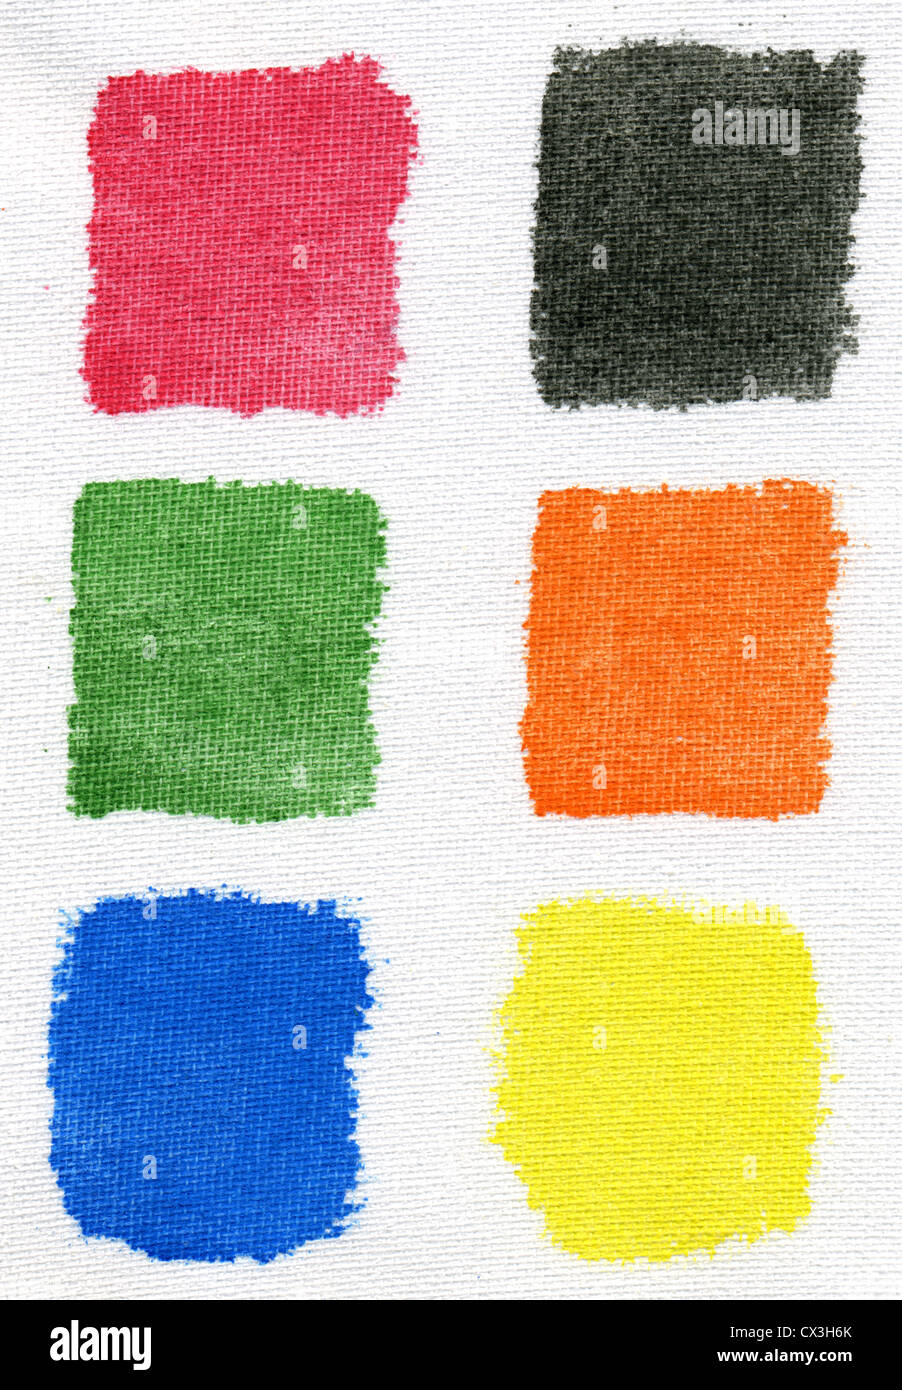 Testing watercolor paints on an artists canvas. - Stock Image